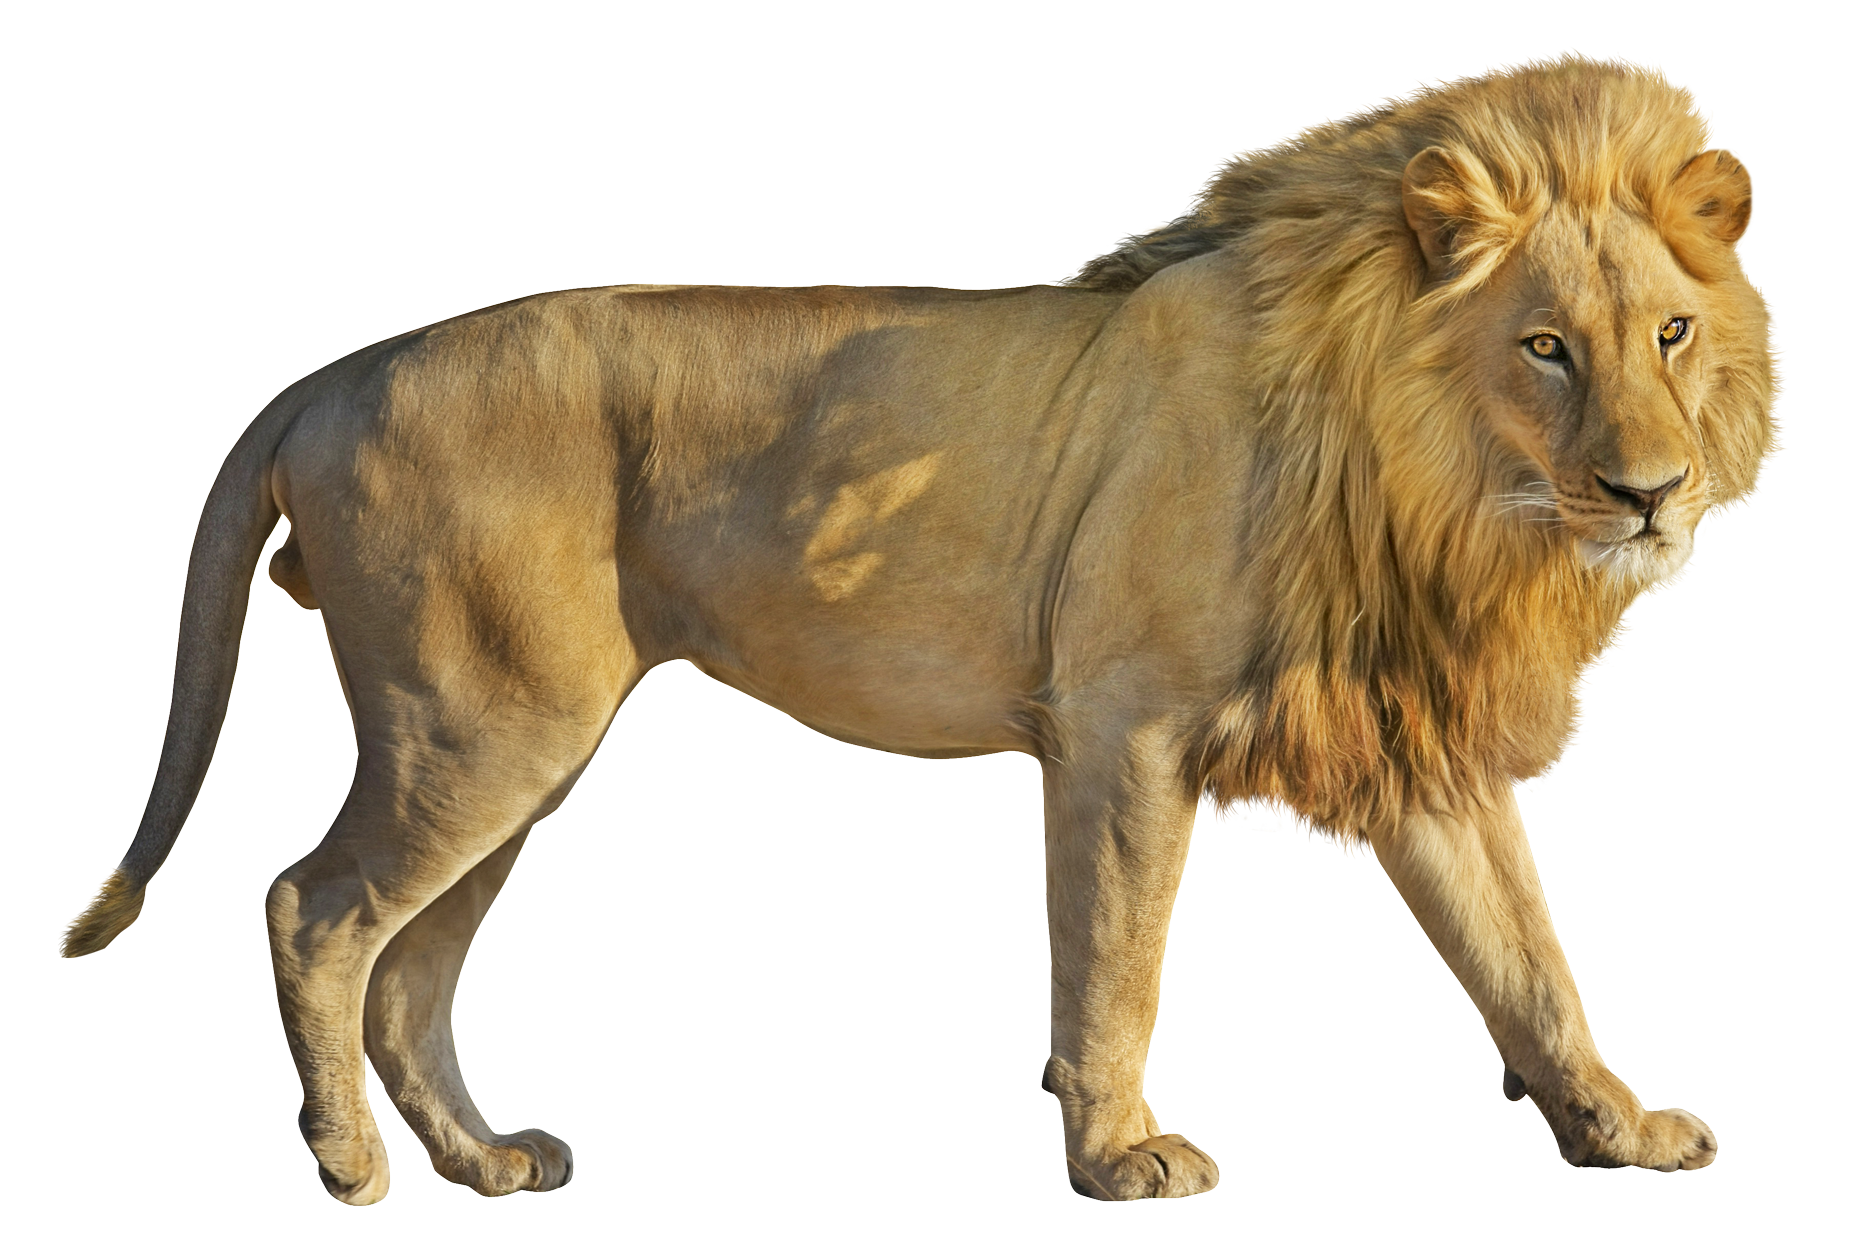 lion png transparent image pngpix #11307